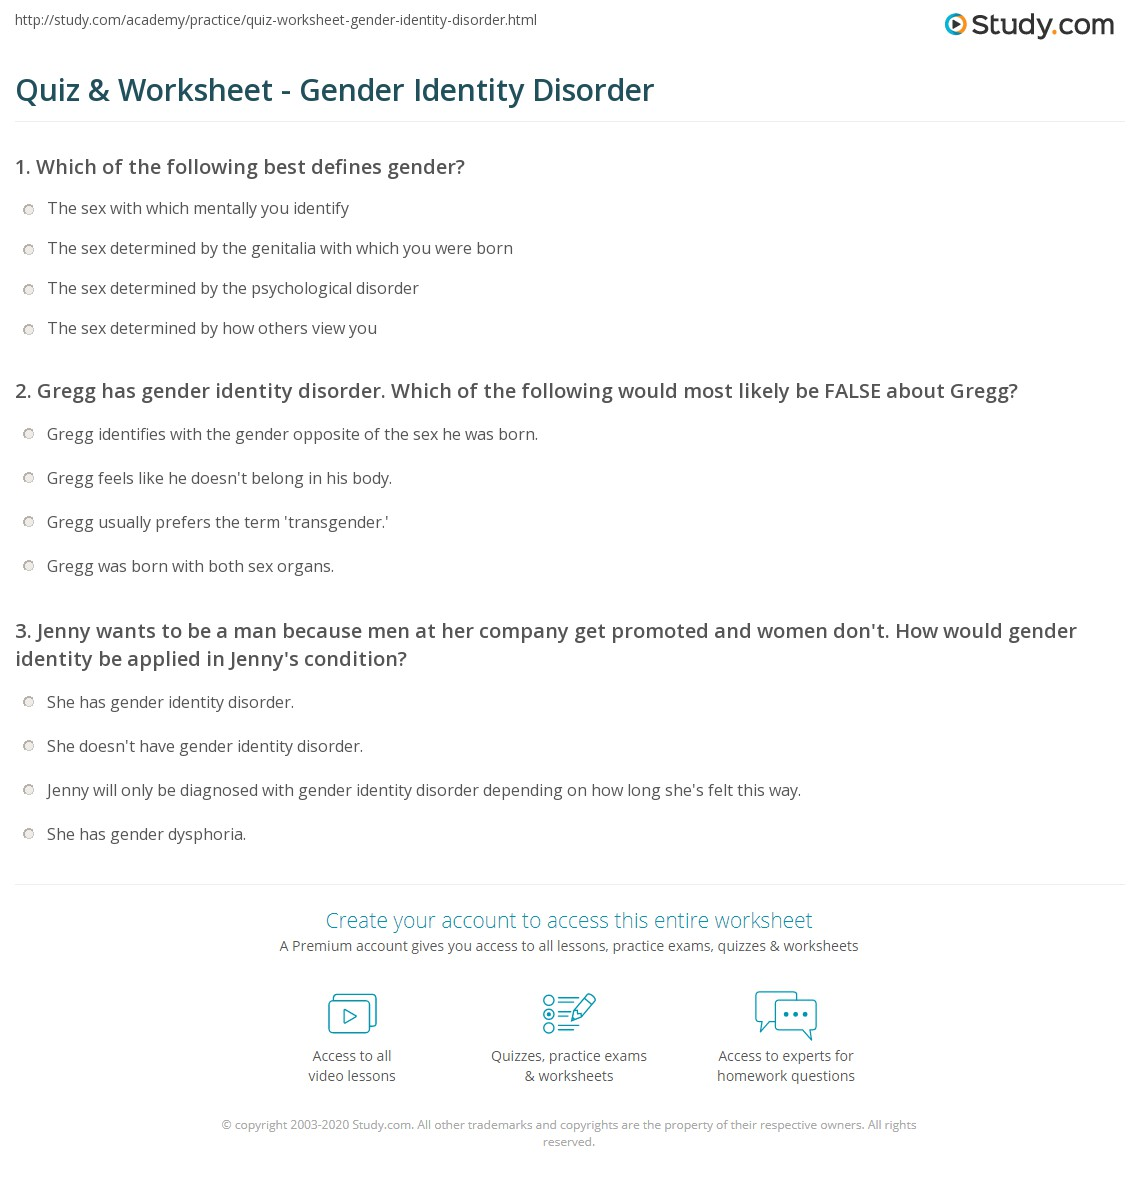 quiz & worksheet - gender identity disorder | study